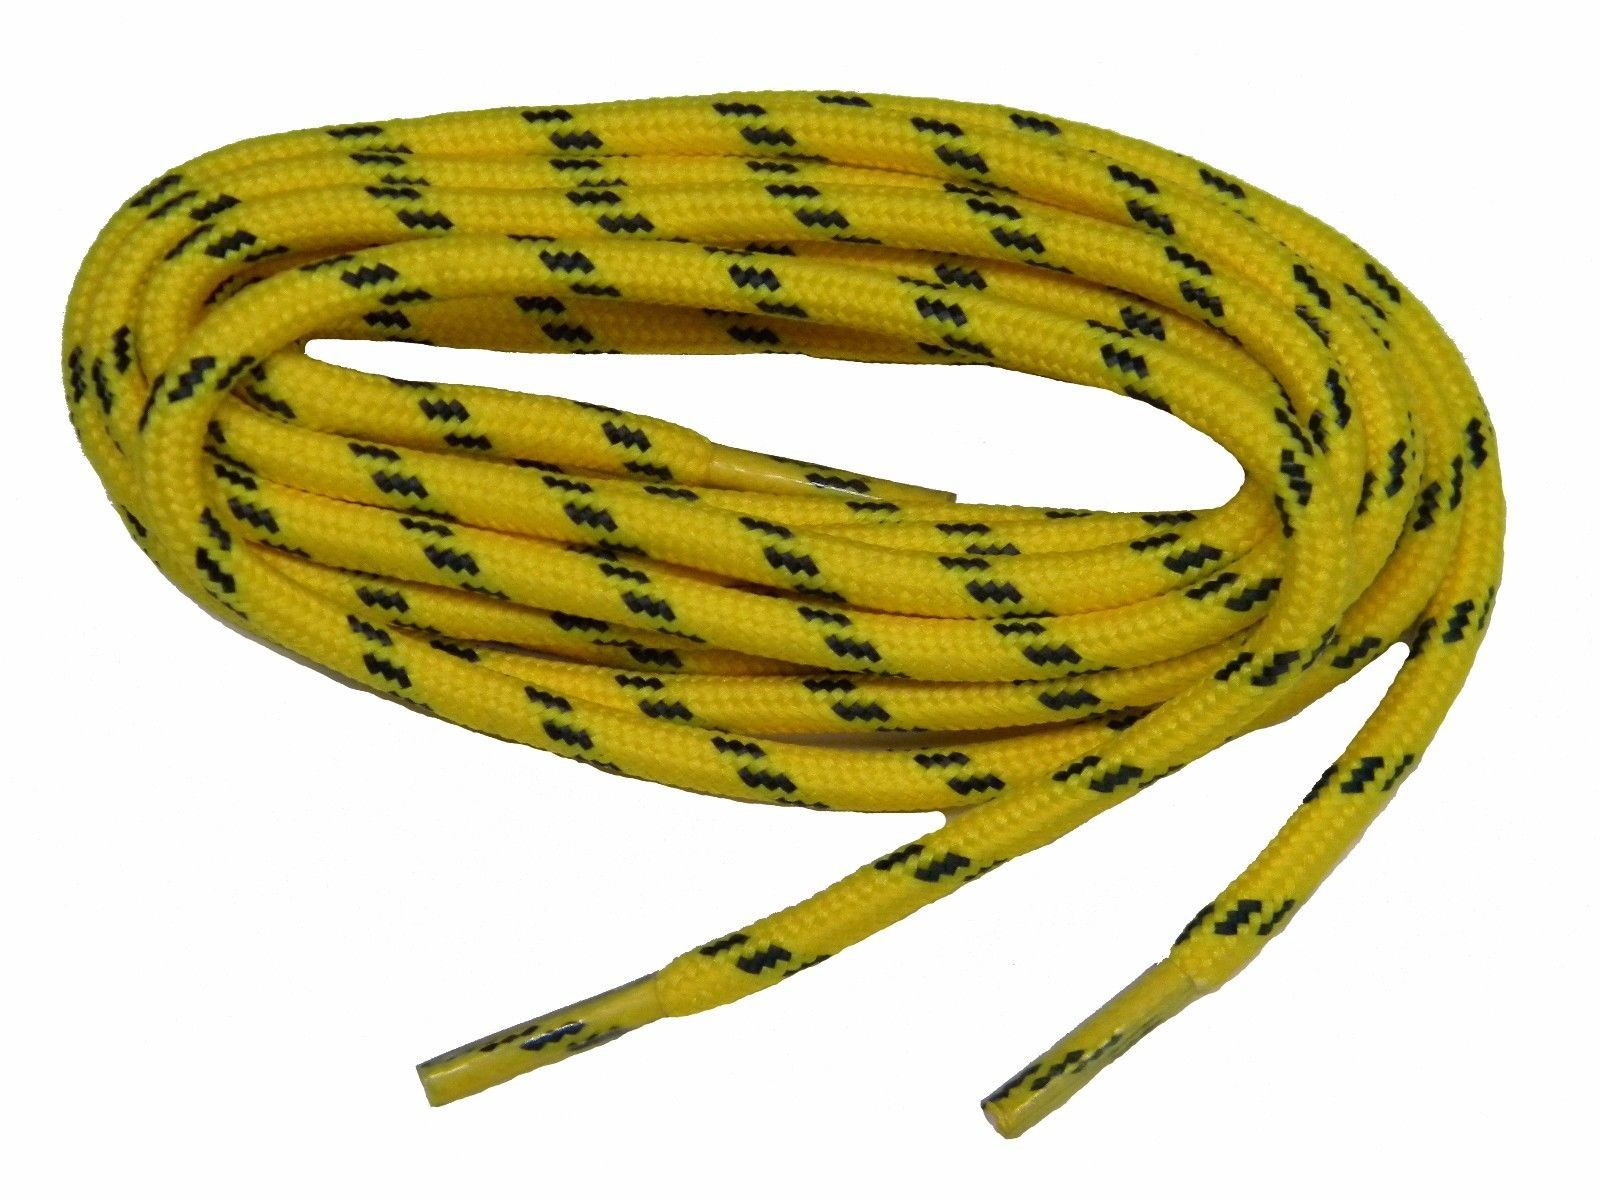 b35781095ebf4 100% Made in America Shoelaces! Discover Quality & Variety *2 Pair ...